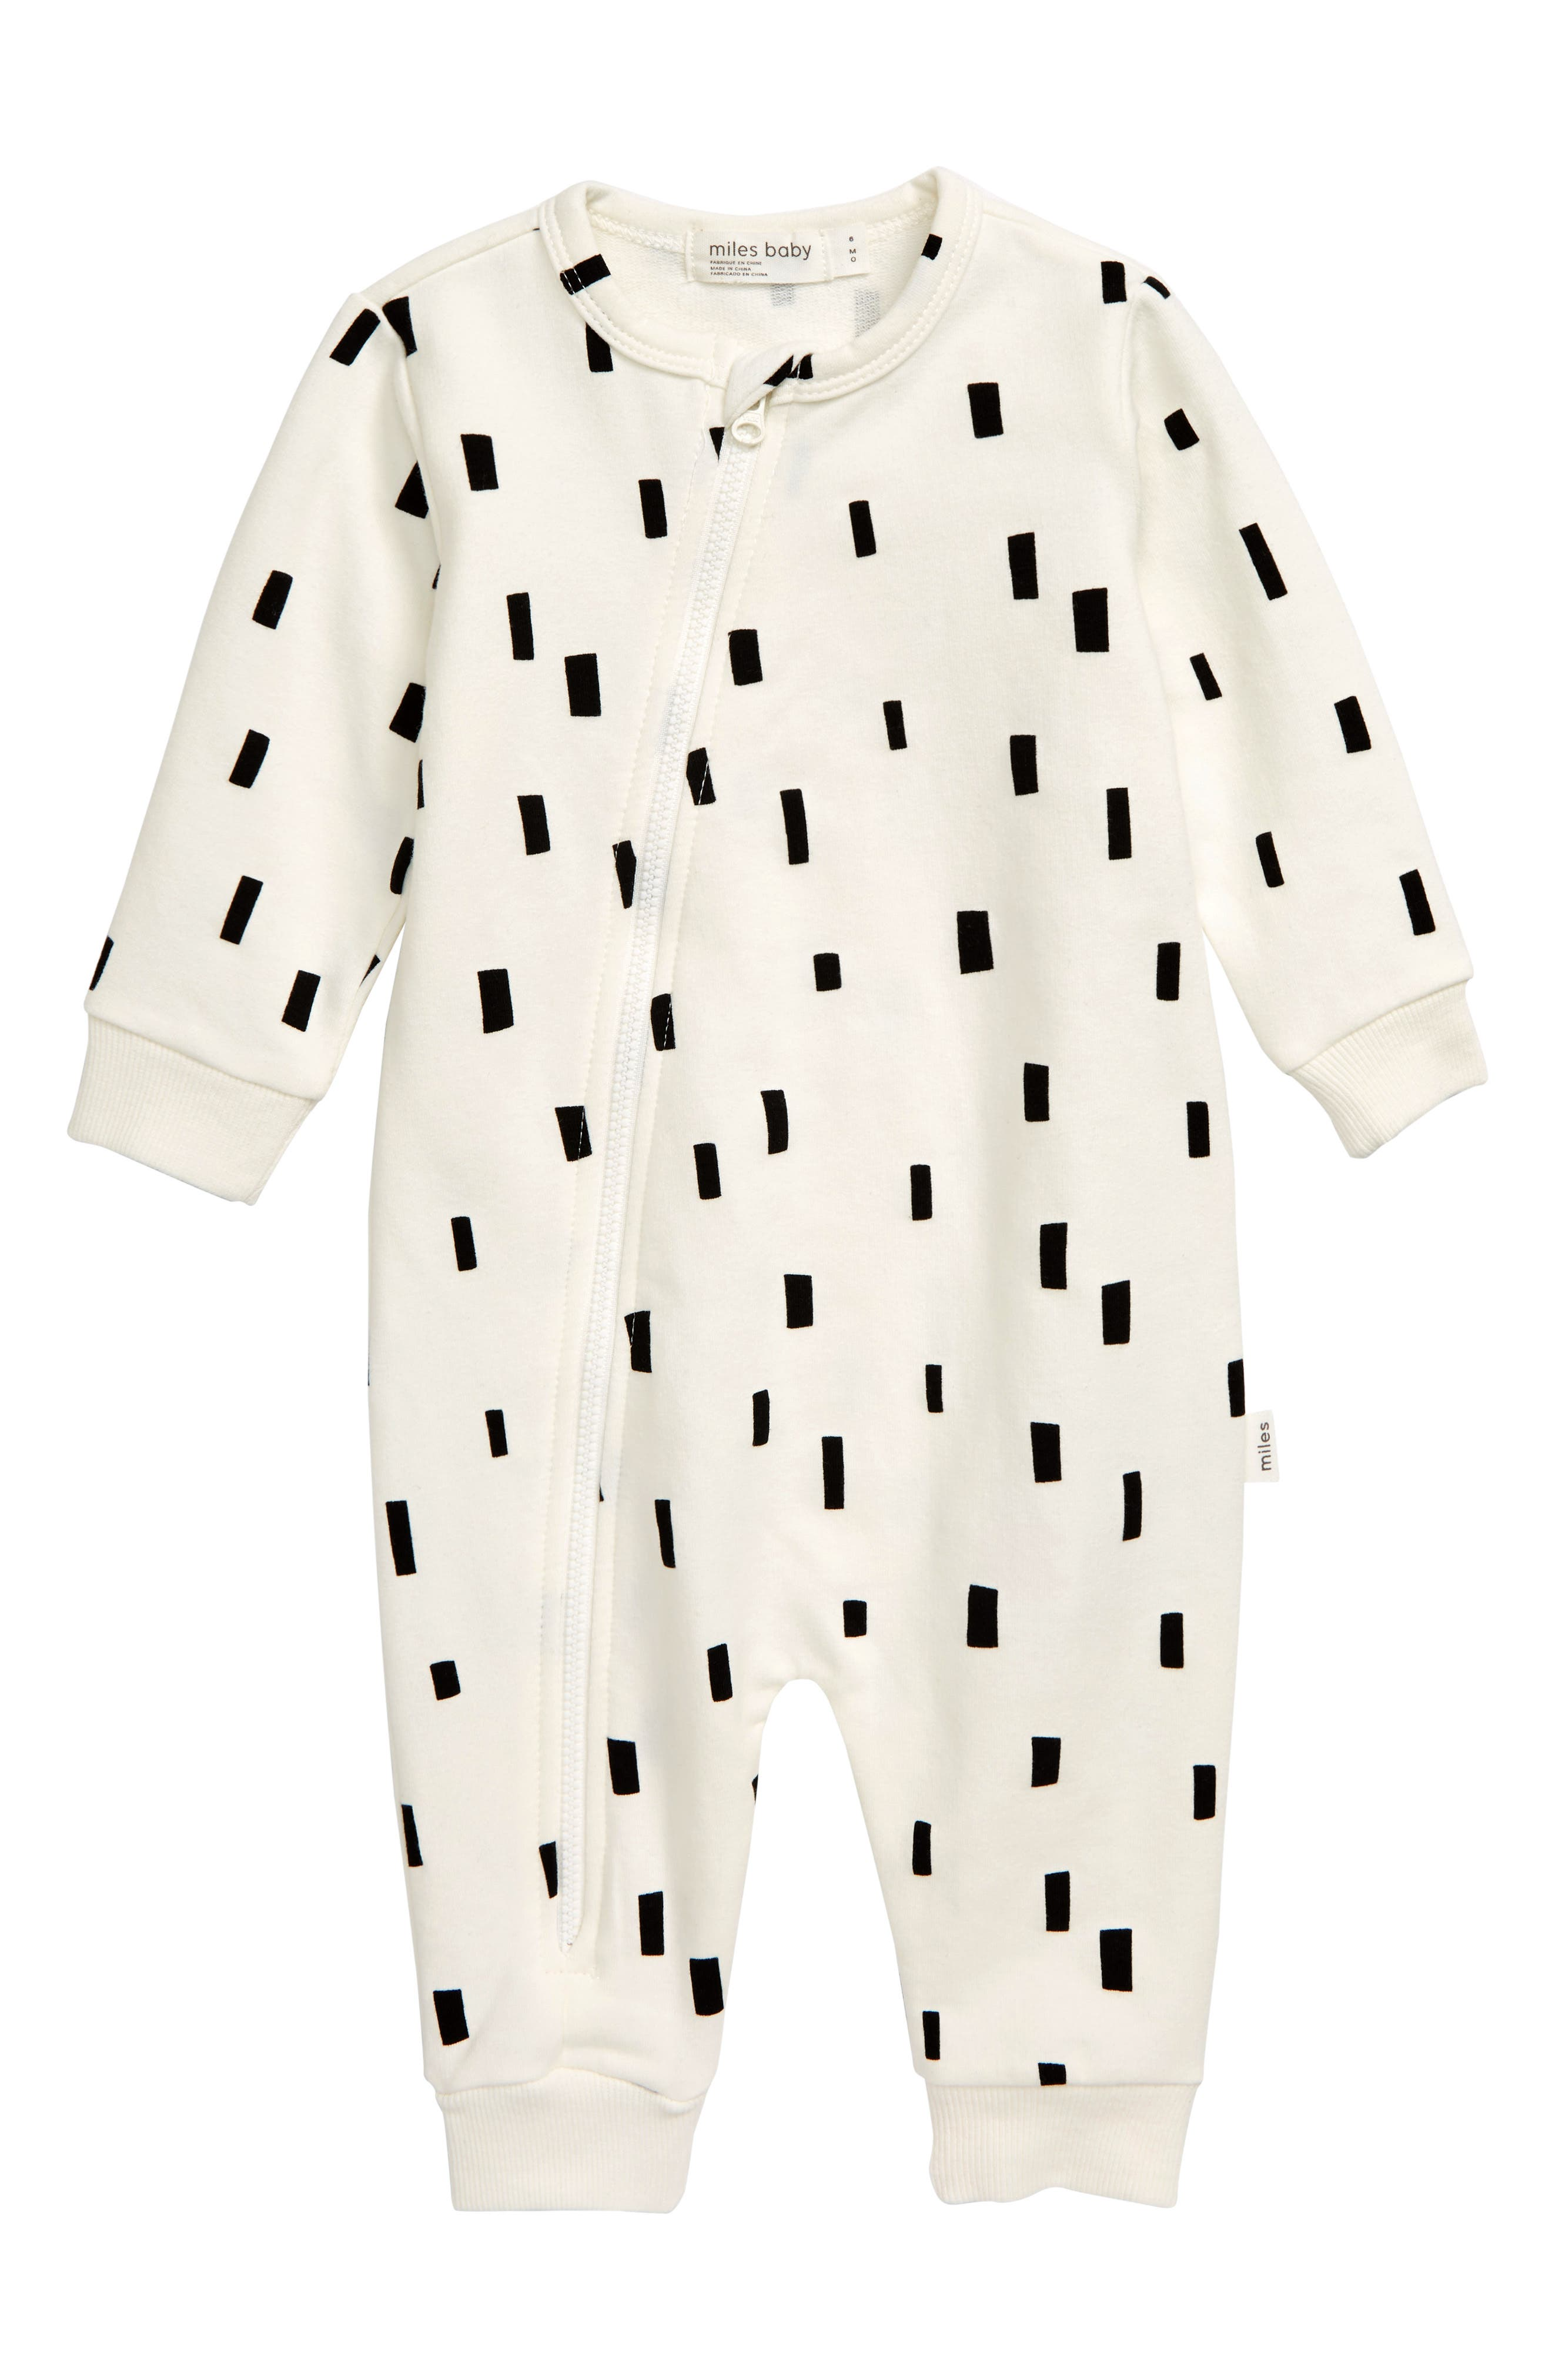 Give your little one a cozy cuddle in this stretchy organic-cotton romper that\\\'s easy on you and baby thanks to a top-to-bottom zipper fixed with a chin guard. Style Name: Miles Baby Asymmetrical Zip Romper (Baby). Style Number: 5886353 1. Available in stores.